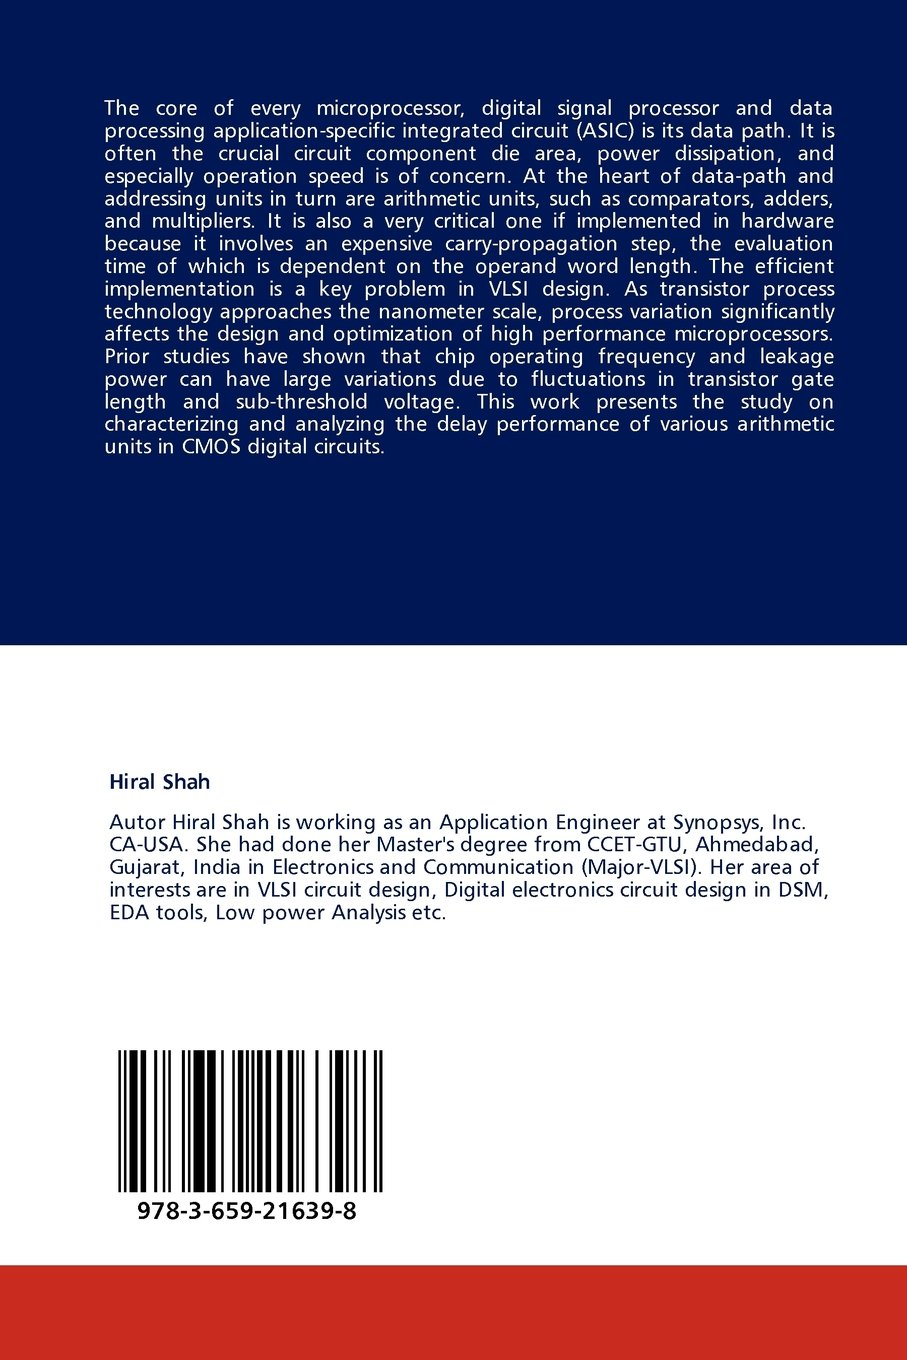 Design Performance Evaluation Of Arithmetic Units In Dsm Vlsi Electronic Circuit Tools Digital Hiral Shah 9783659216398 Books